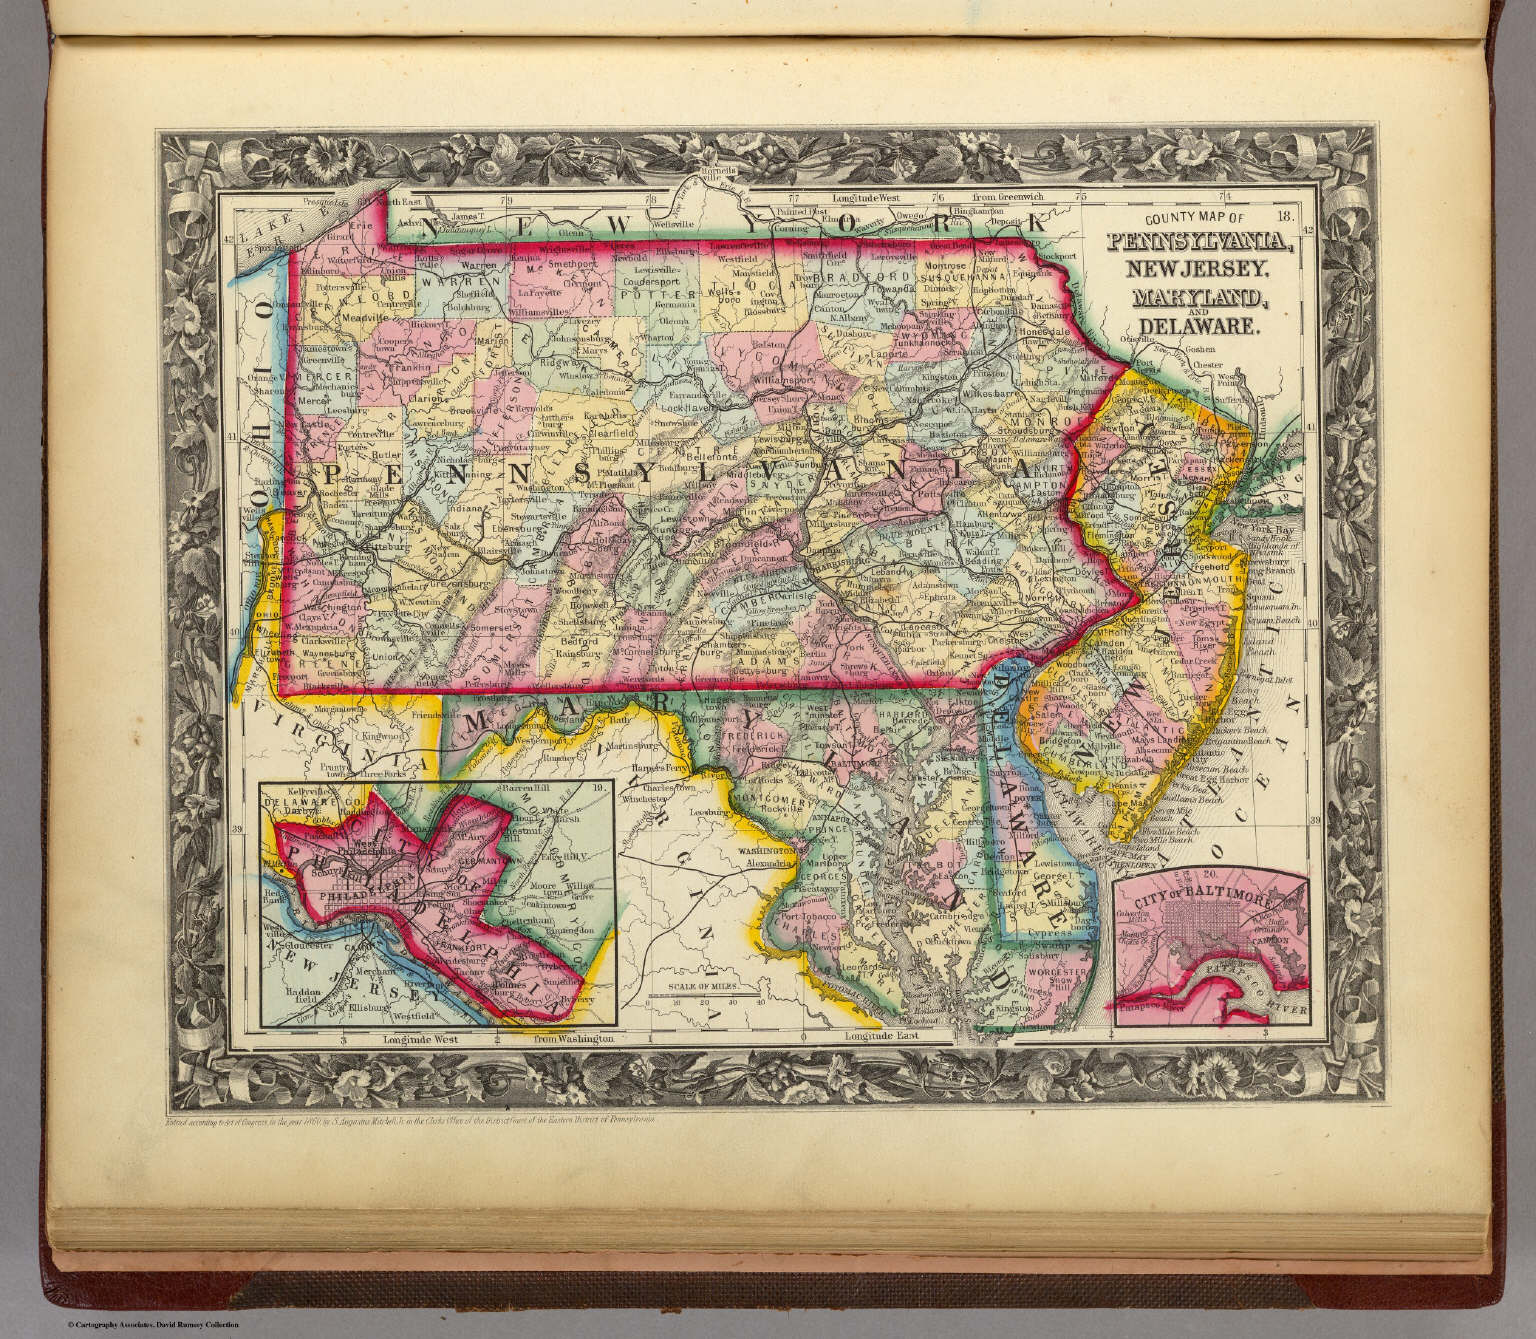 County Map Of Pennsylvania New Jersey Maryland And Delaware David Rumsey Historical Map Collection